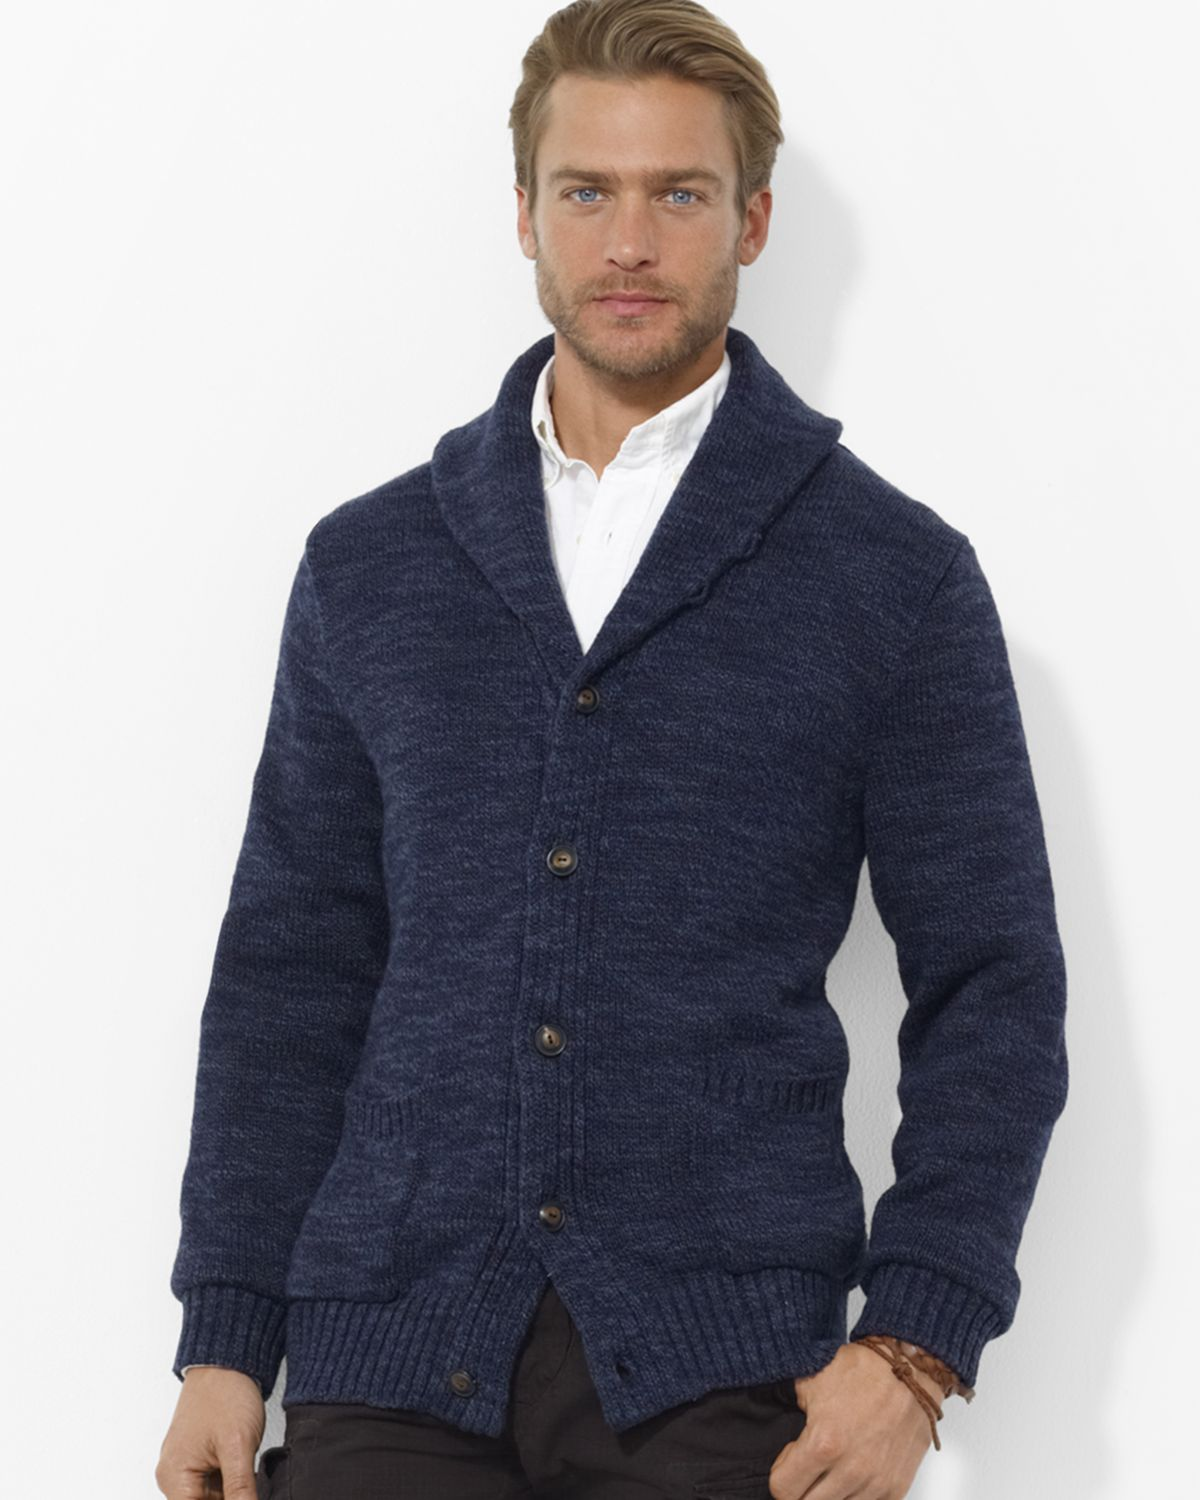 Ralph lauren Polo Carded Cotton Shawl Cardigan in Blue for Men | Lyst